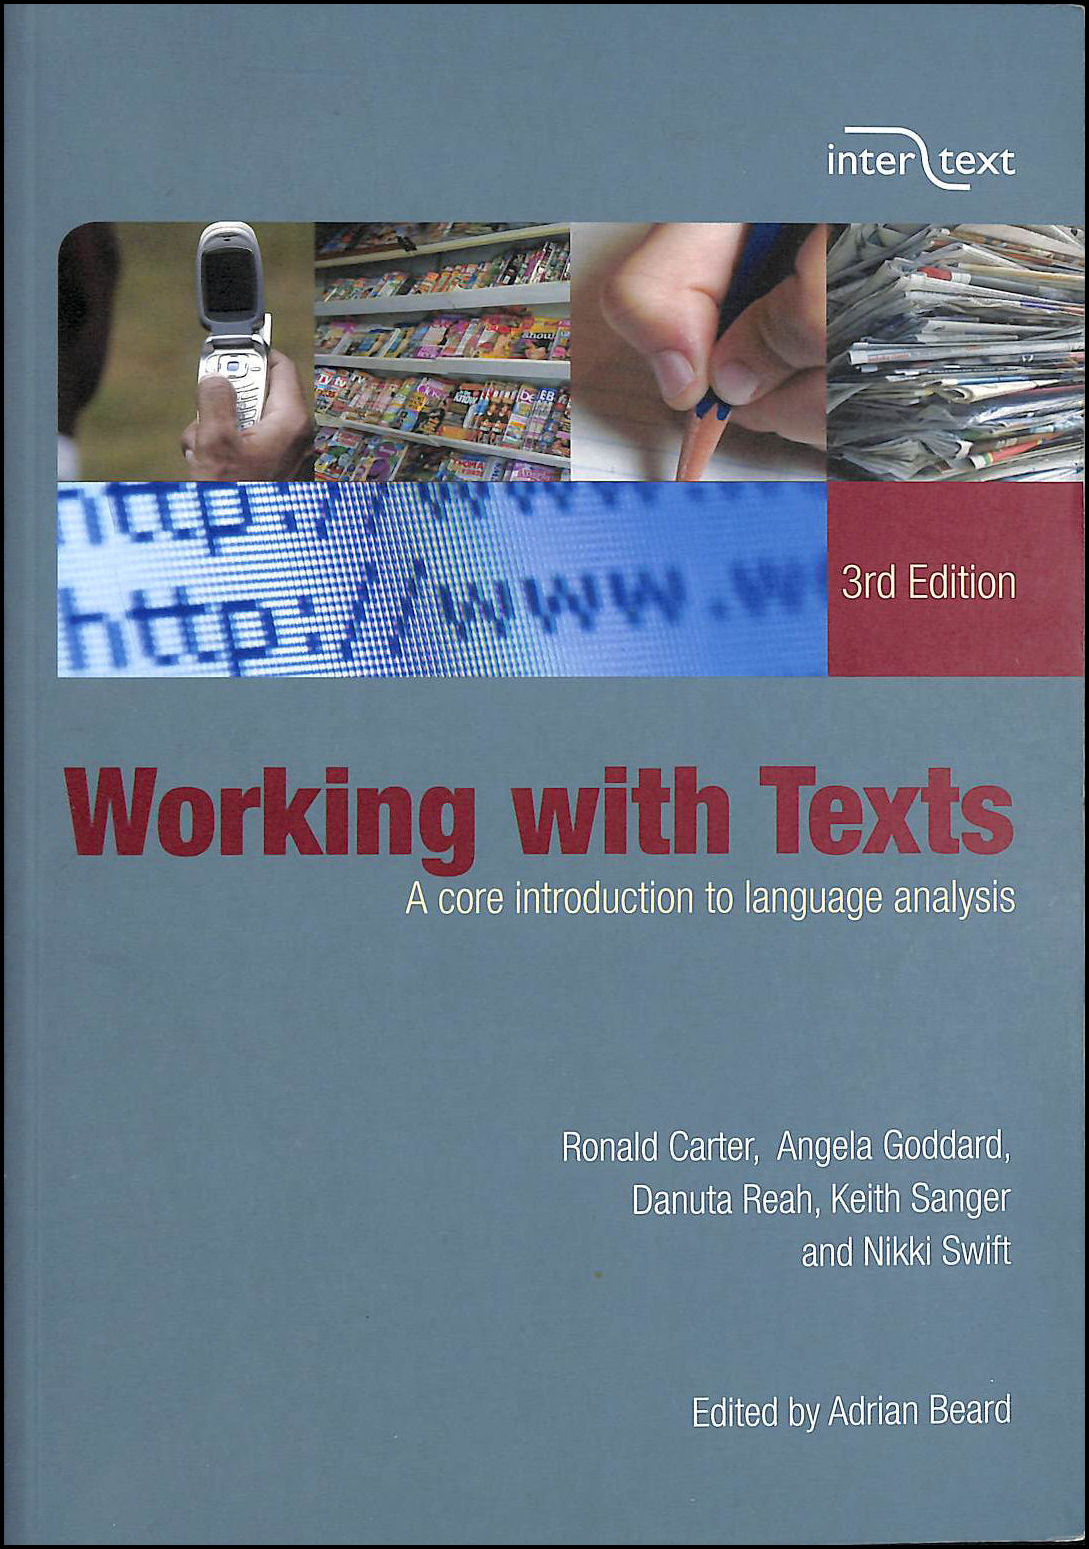 Working with Texts: A Core Introduction to Language Analysis (Intertext), Ronald Carter; Maggie Bowring; Angela Goddard; Danuta Reah; Keith Sanger; Nikki Swift; Adrian Beard [Editor]